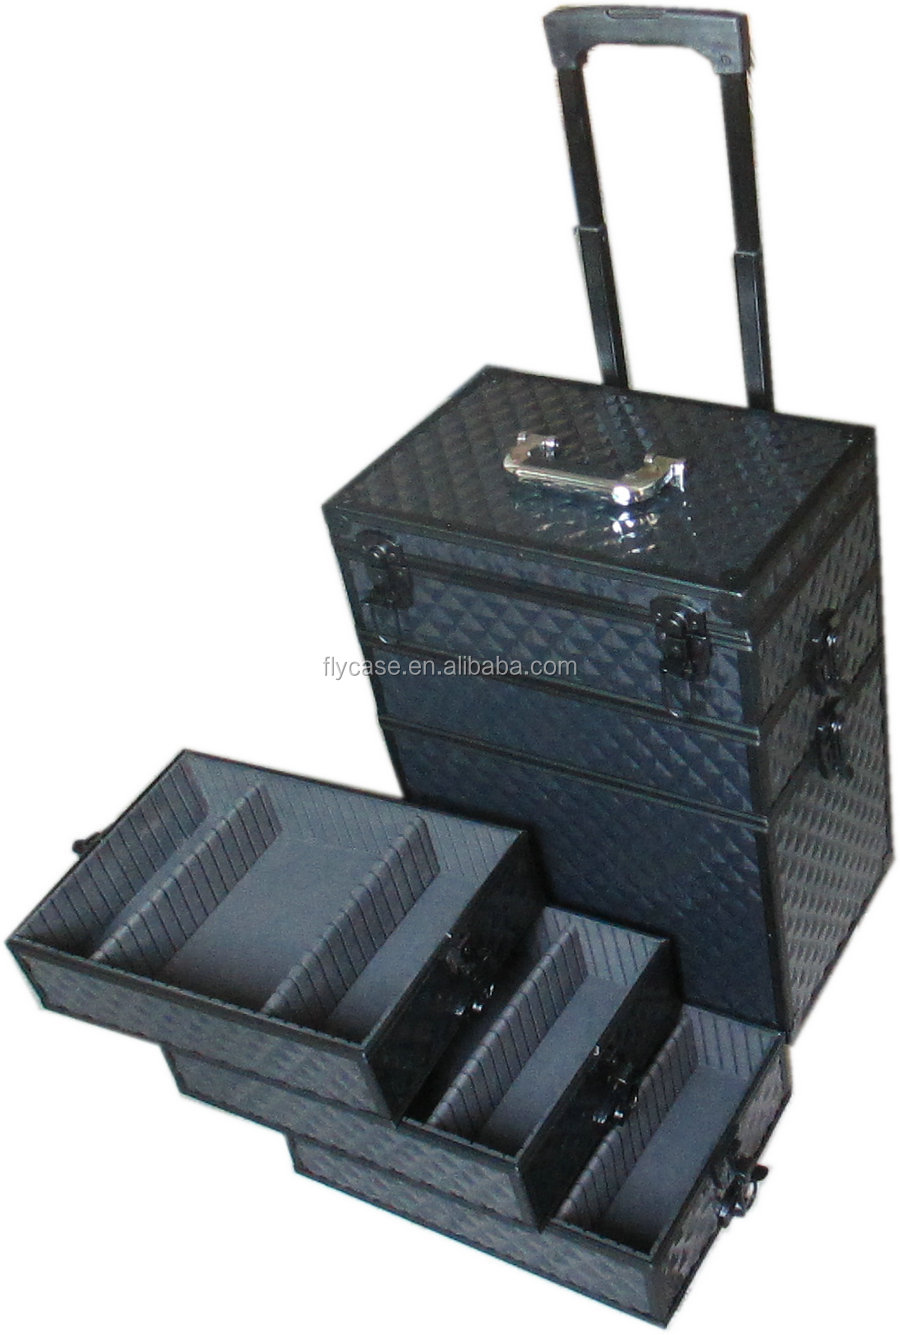 design new abs aluminum makeup trolley case with drawers and foam inside